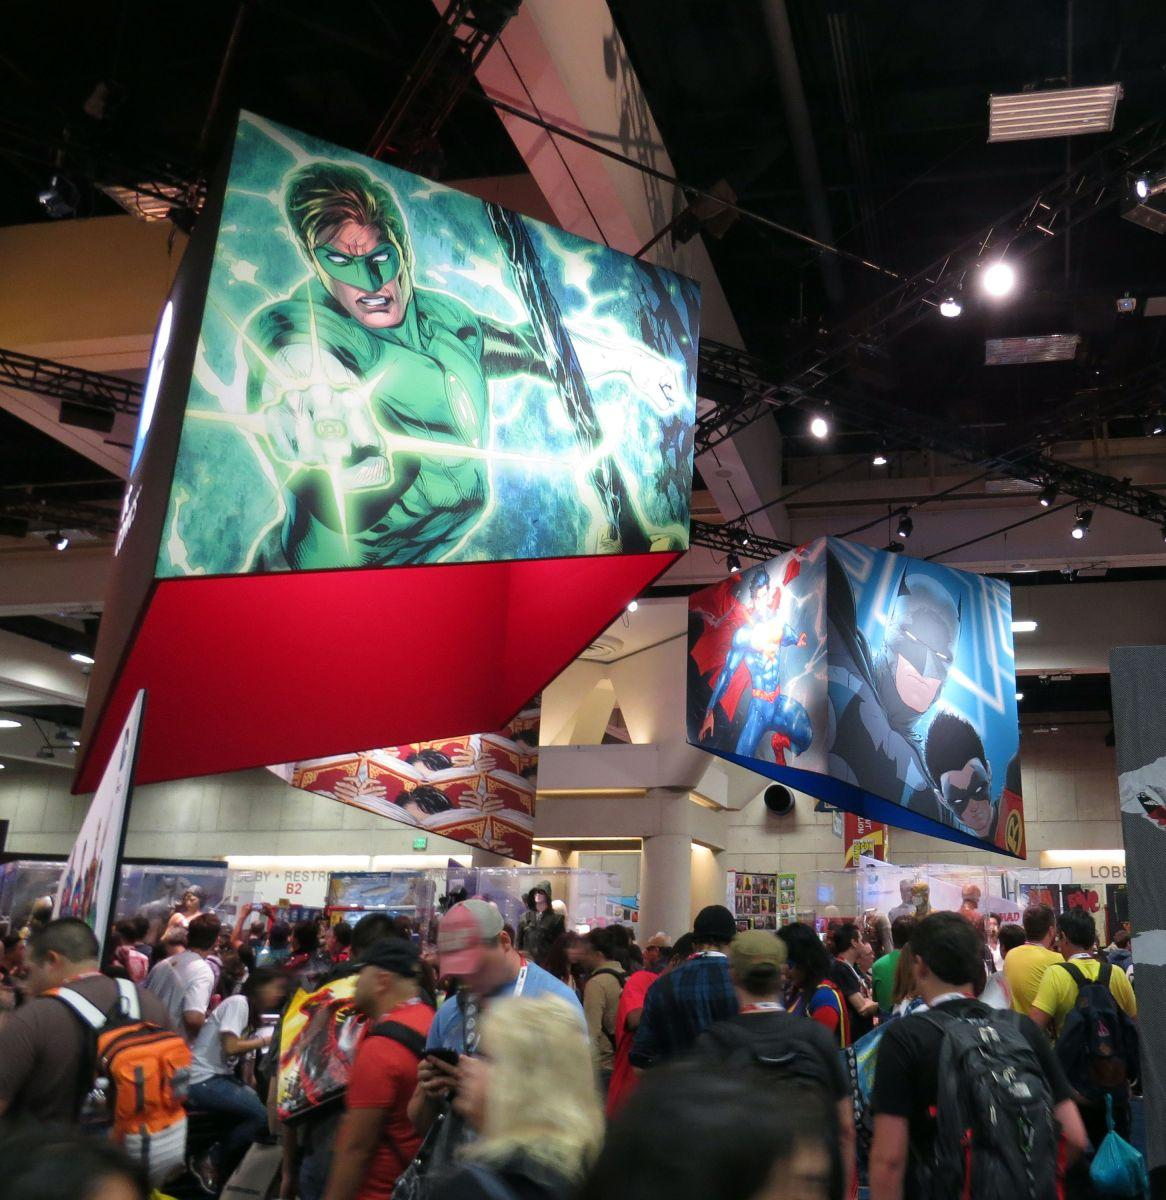 sdcc2015-07-09-dc-entertainment-booth-03